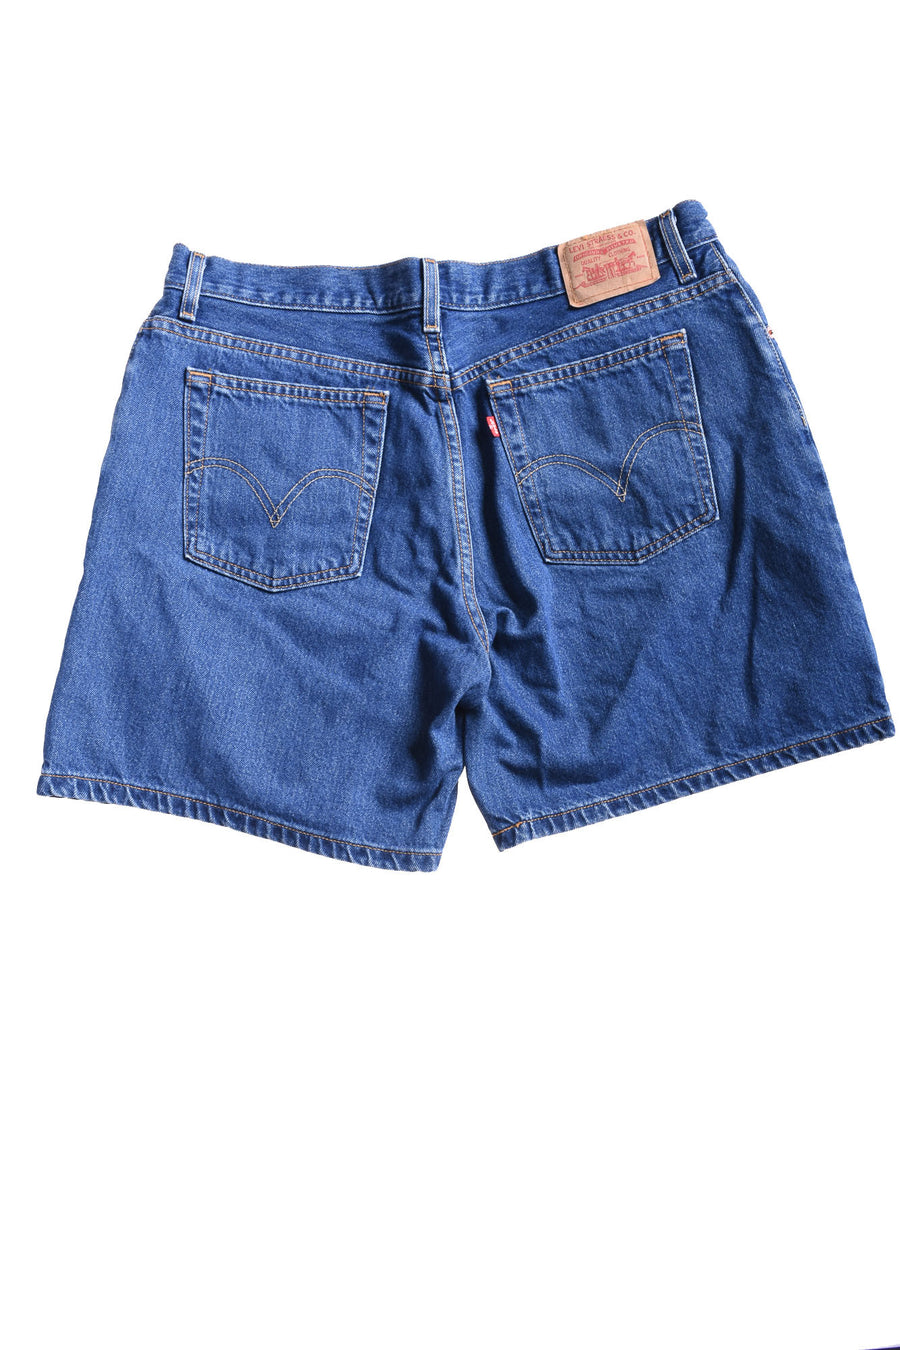 Women's Shorts By Levi's